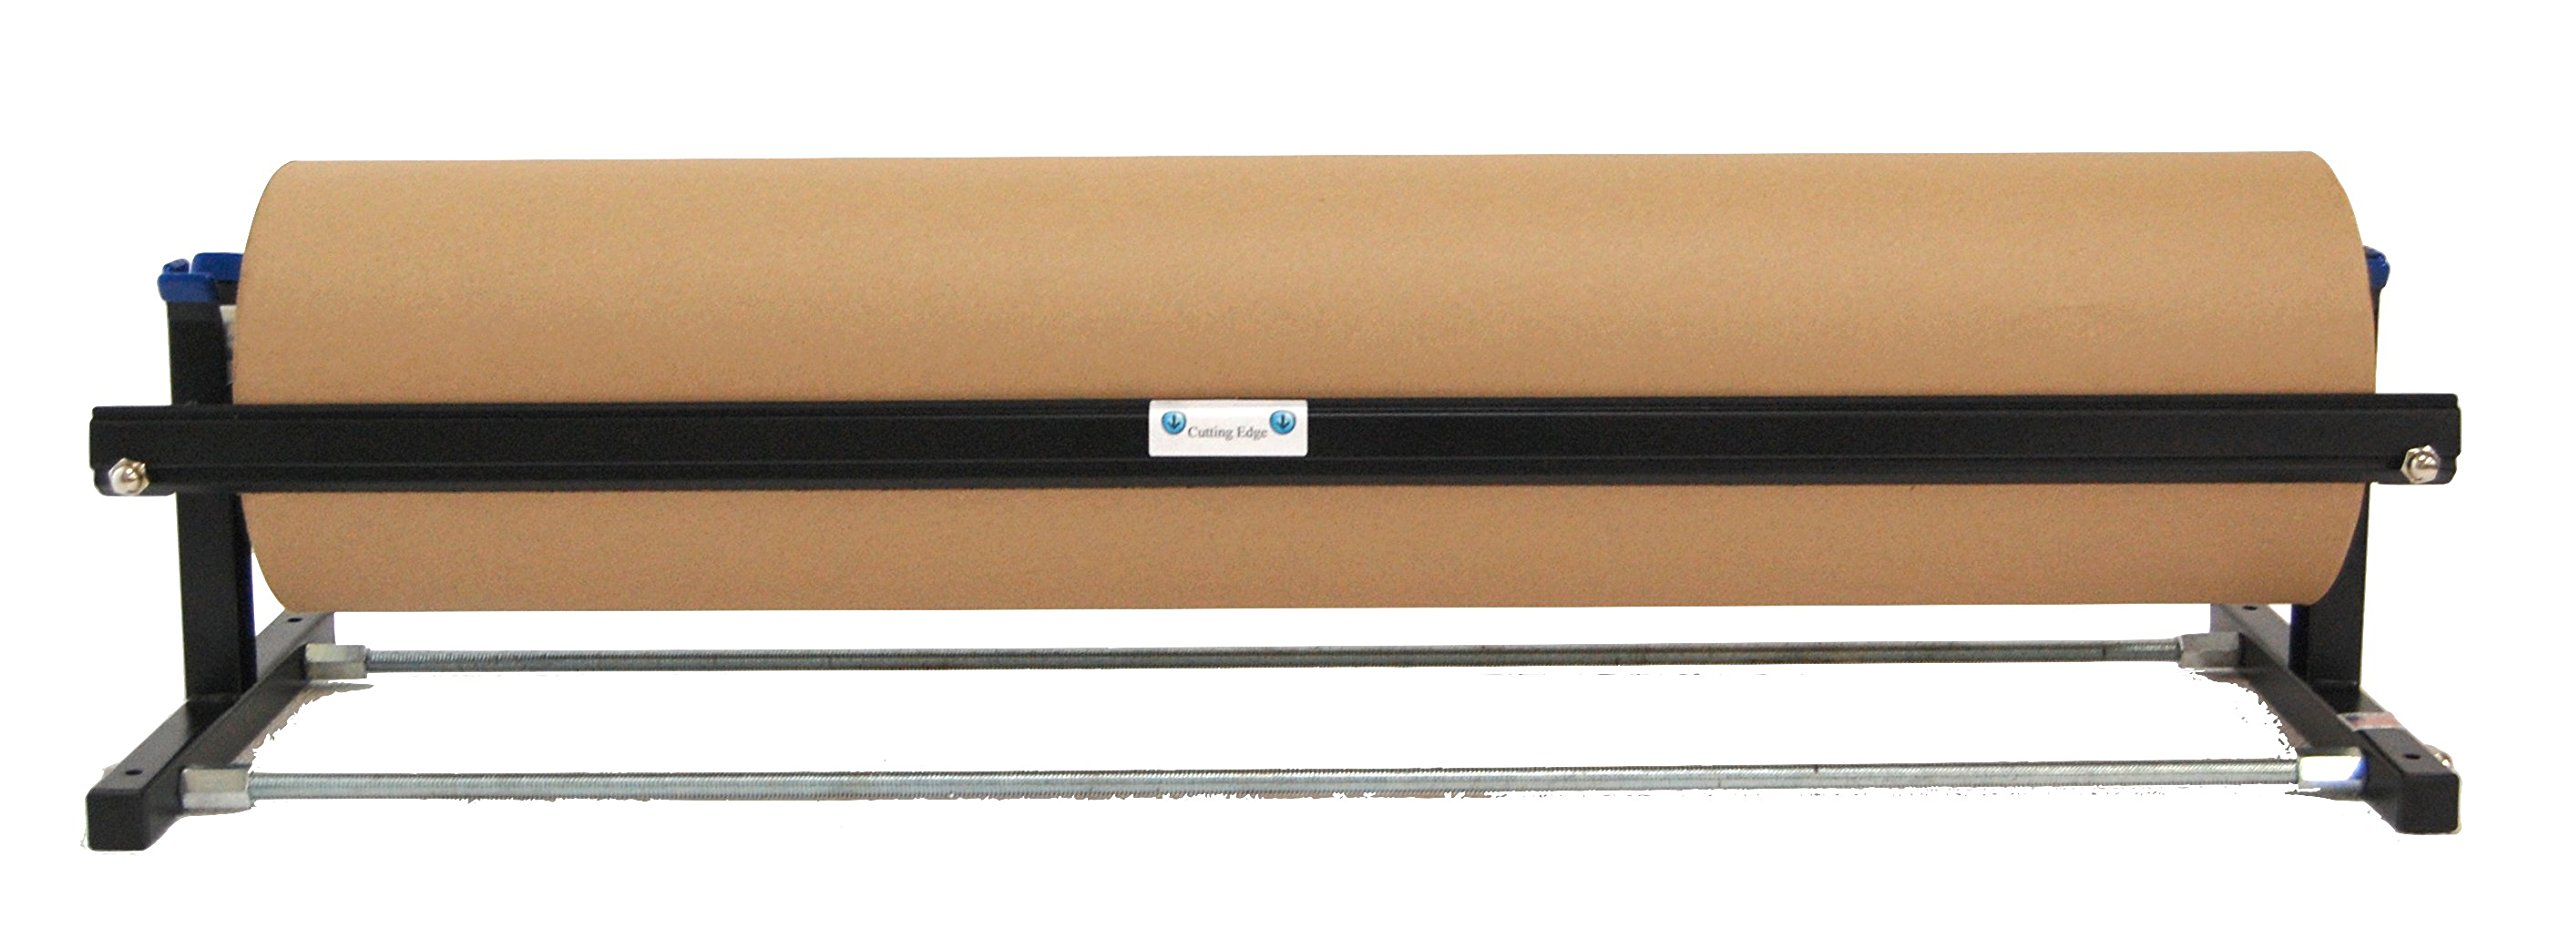 Kraft Paper Dispenser - Horizontal - with Smooth Blade - Fits 48'' Roll (1 Dispenser) - EP-5920-48